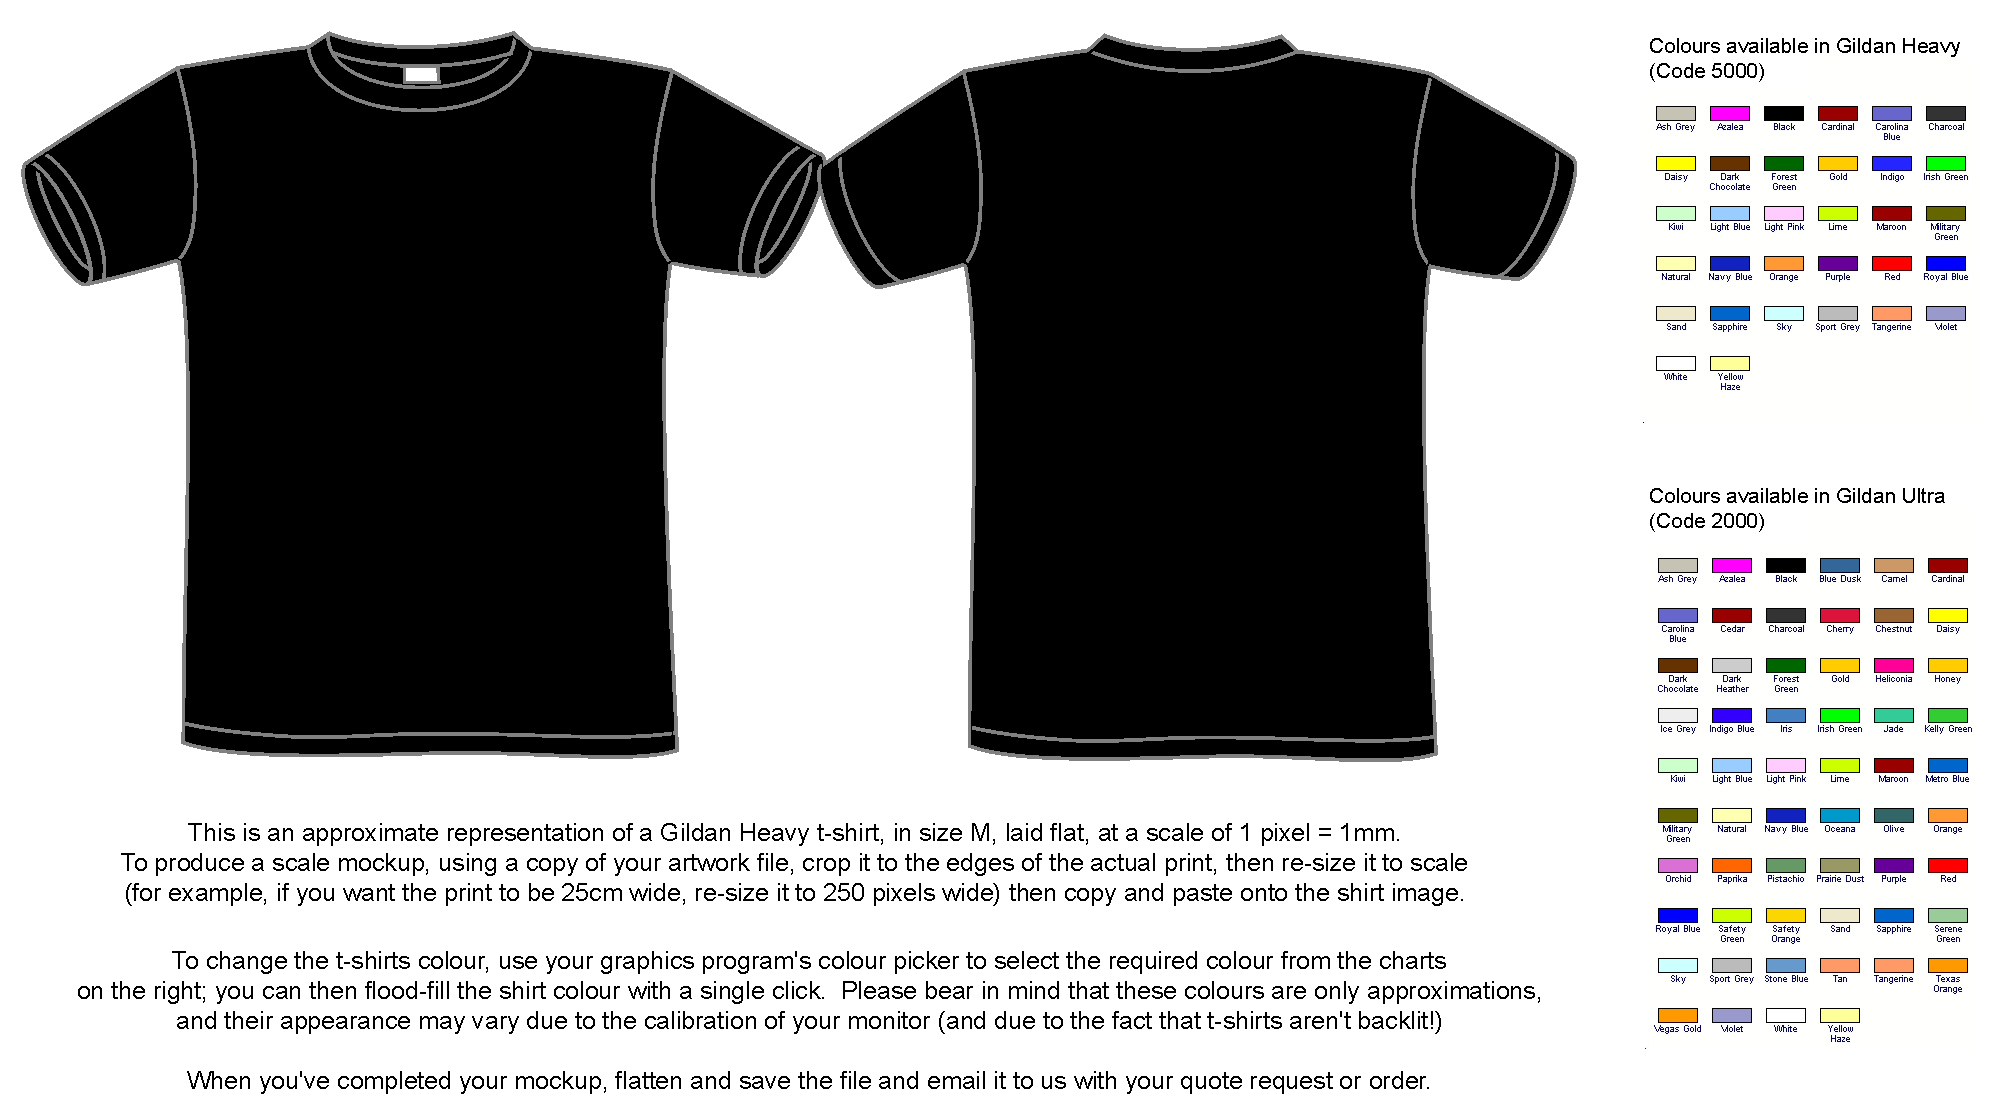 Black Shirt Vector At Getdrawings Com Free For Personal Use Black